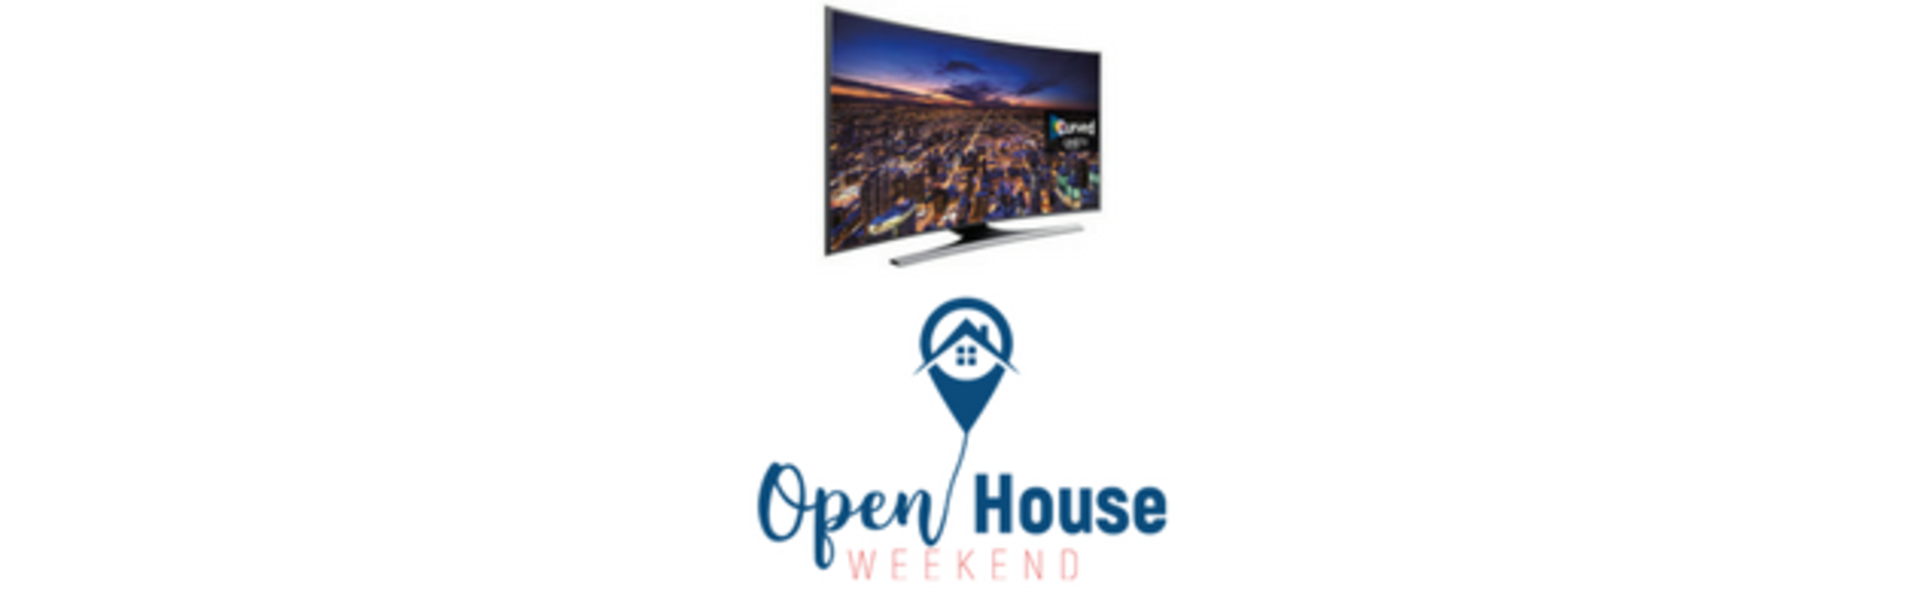 Attend Open Houses This Weekend For A Chance To Win This TV!